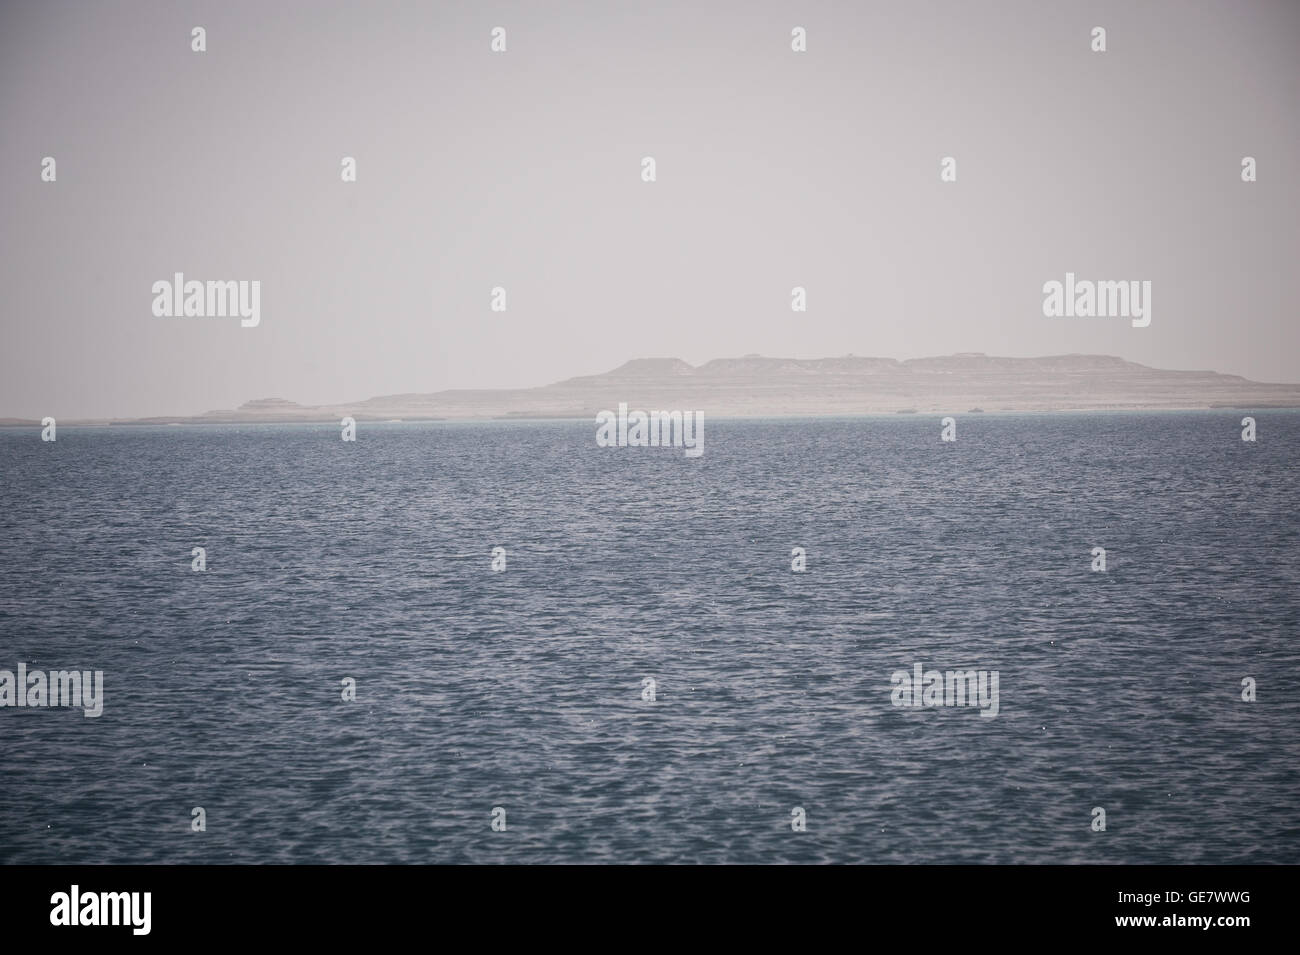 A view of Saudi Arabia over the Inland Sea, which is an inlet of the Arabian Gulf forming a tidal lake. The Inland - Stock Image